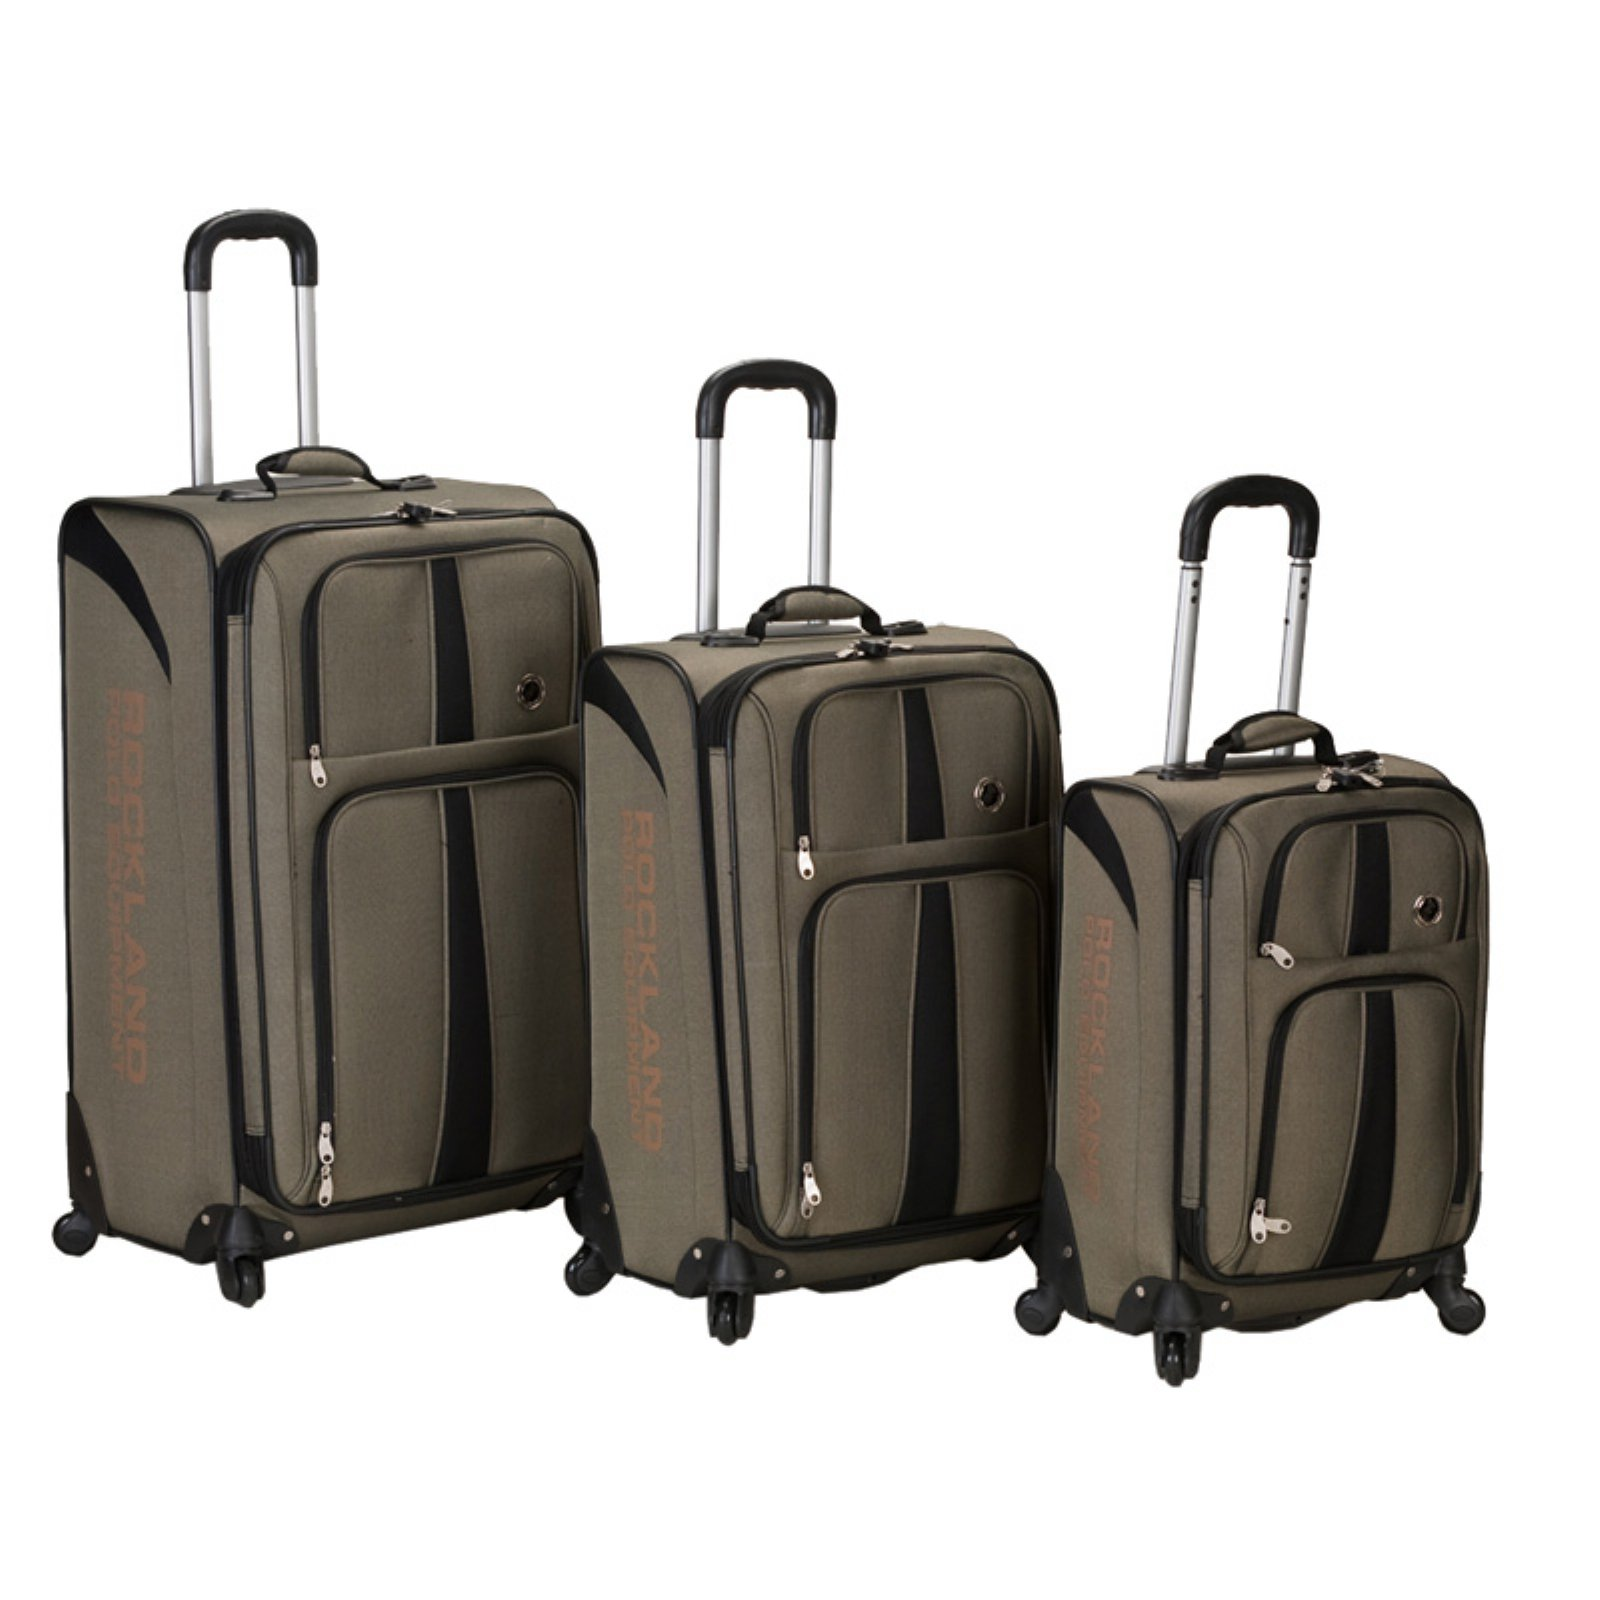 Rockland Luggage 3-Piece Eclipse Spinner Luggage Set, Tan